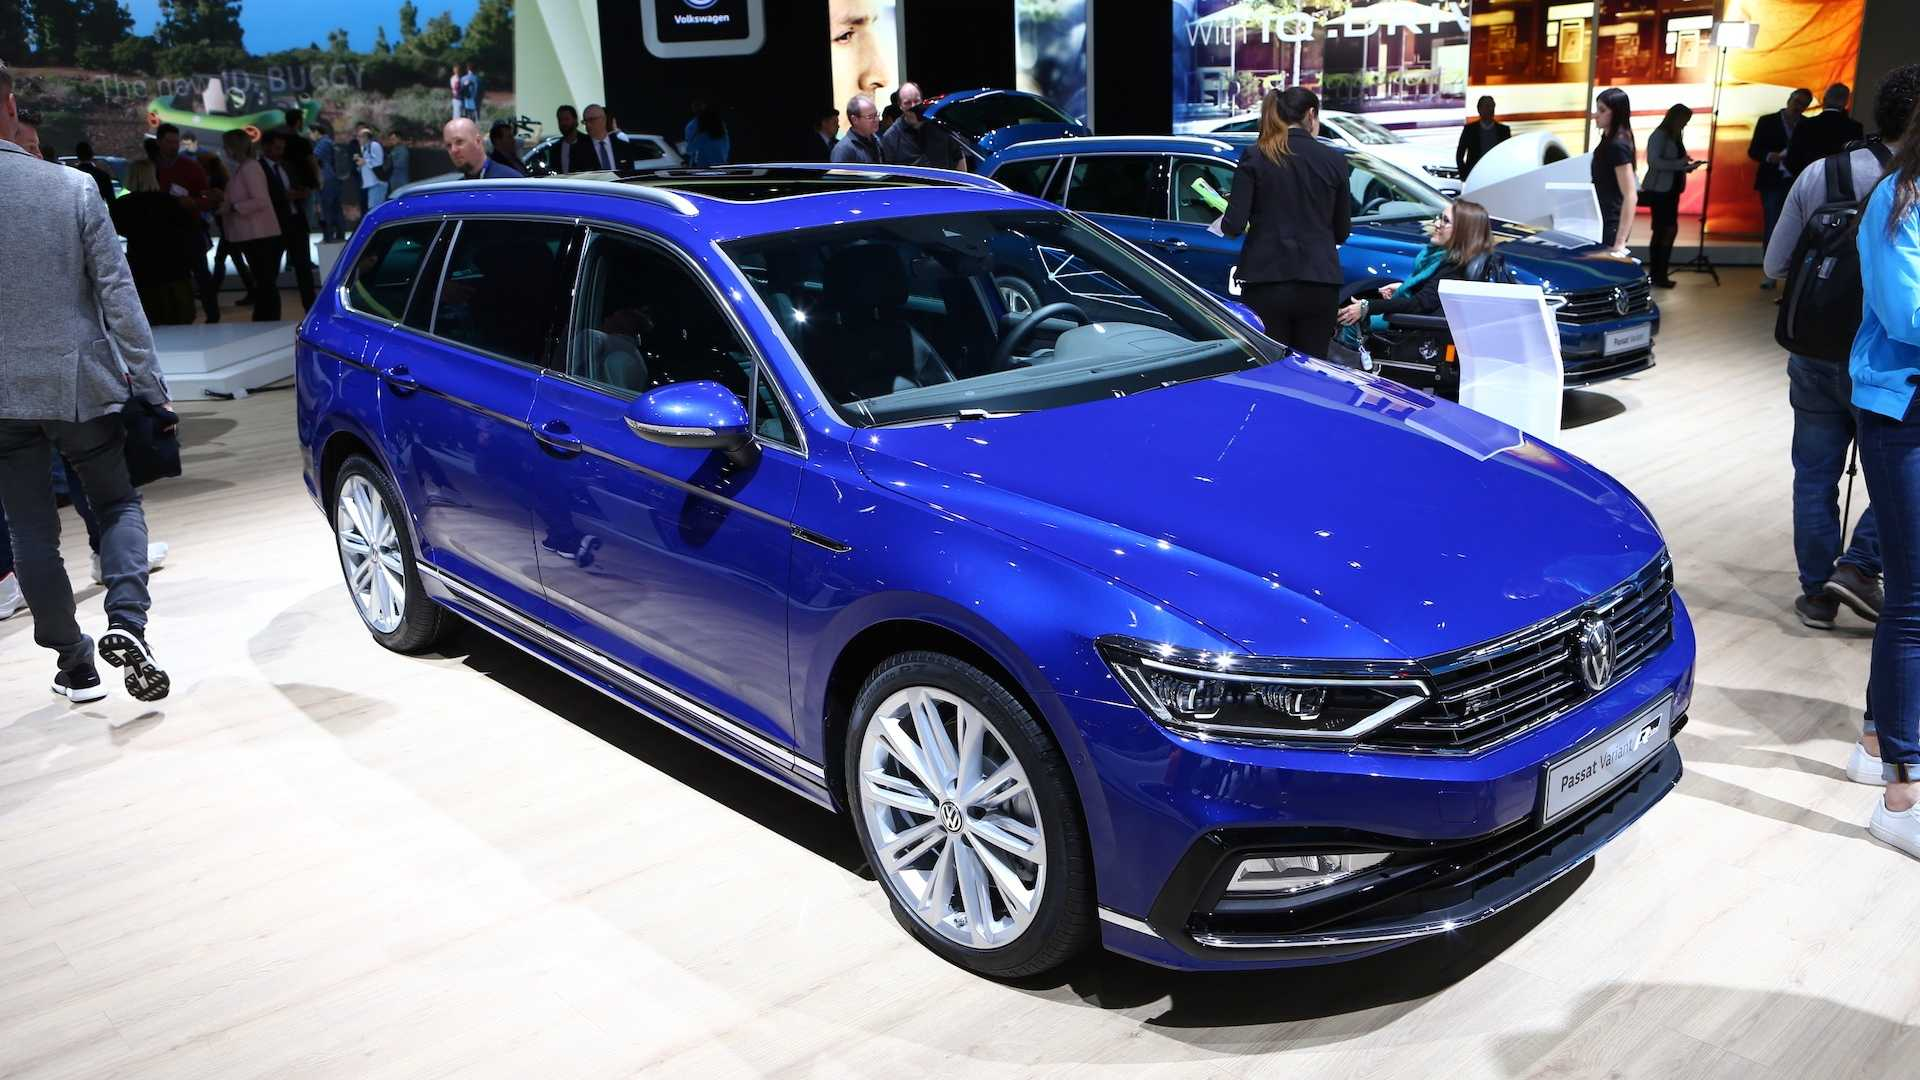 65 The 2019 Vw Passat Spy Shoot